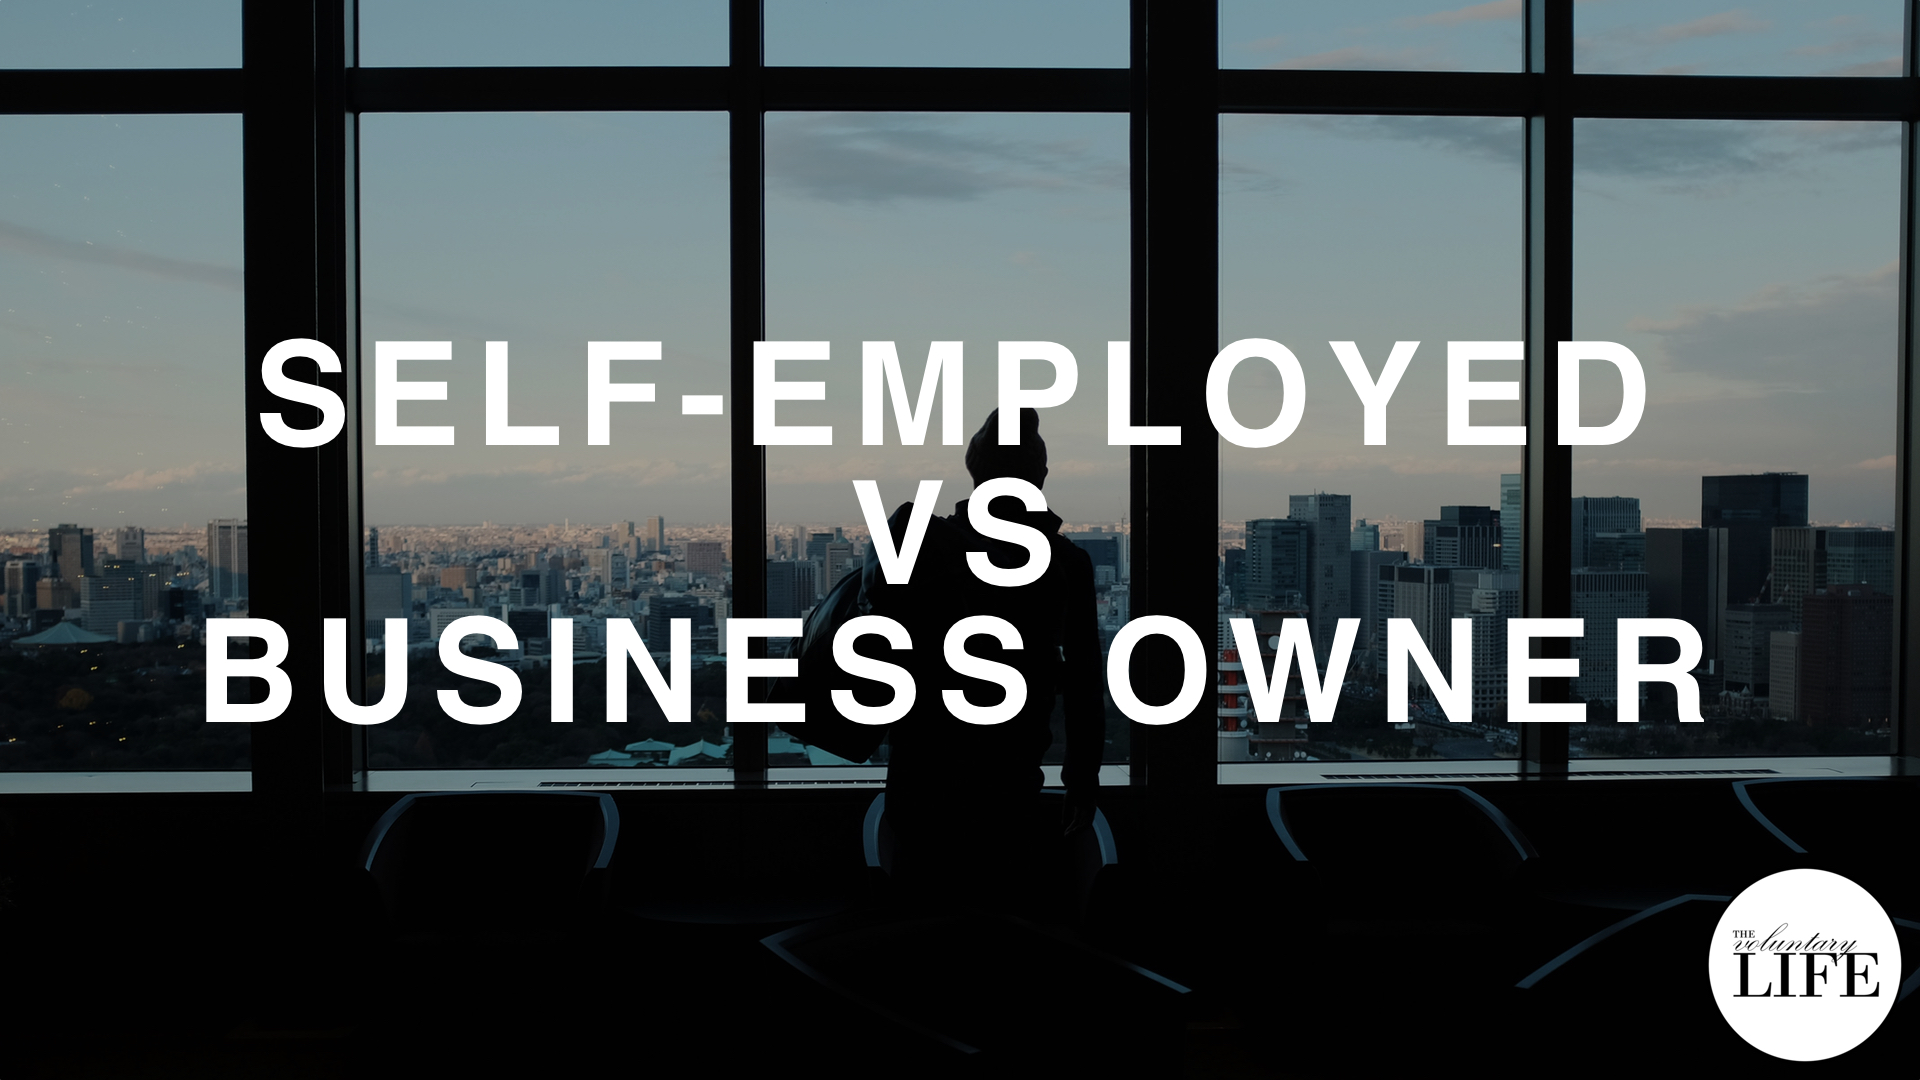 106 Self-Employed Vs Business Owner